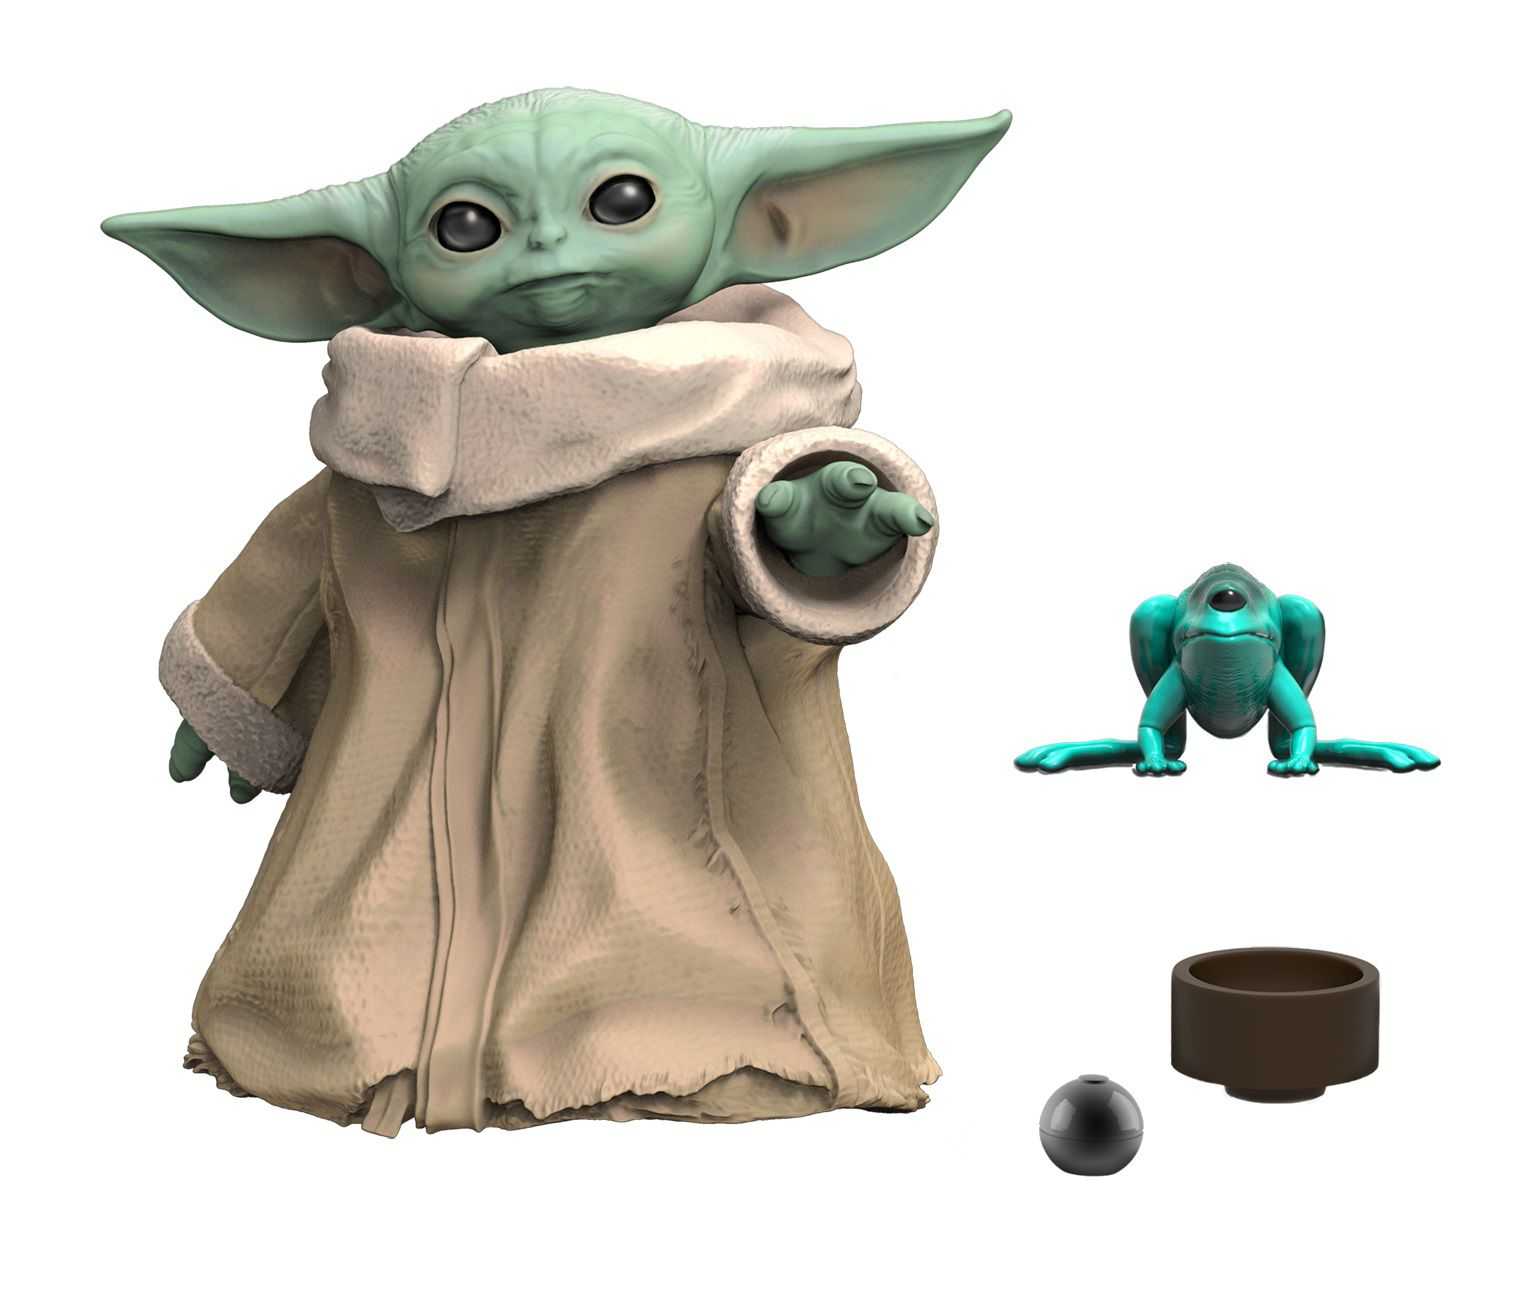 Action Figure Grogu ''Baby Yoda'' (The Child): The Mandaloria (Star Wars) The Black Series F1203 (Boneco Colecionável) - Hasbro